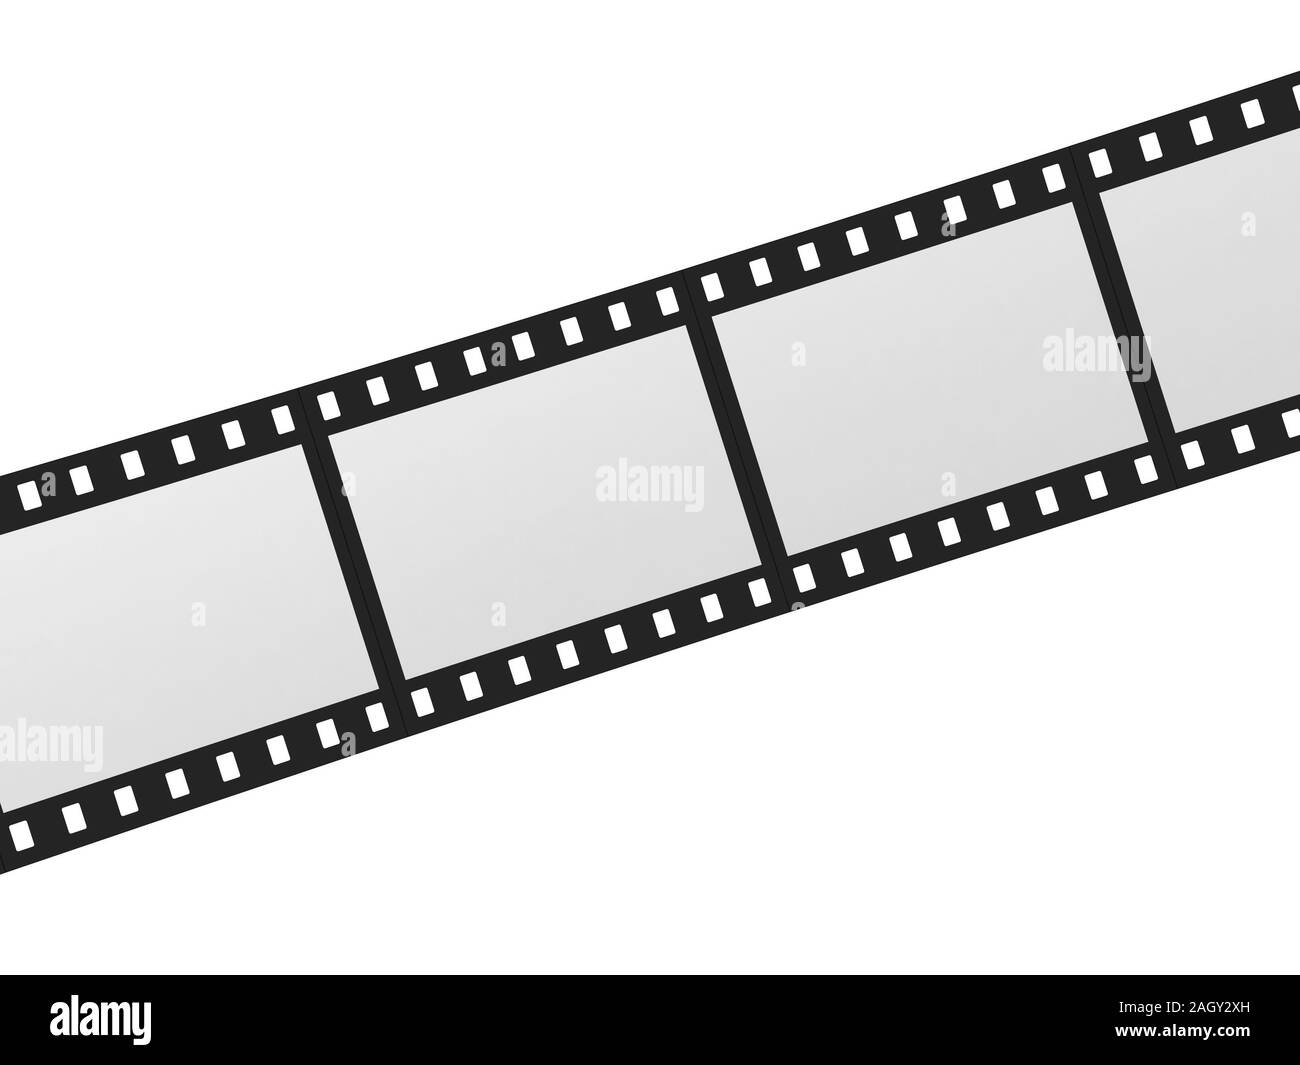 Movei film. 3d illustration isolated on white background Stock Photo